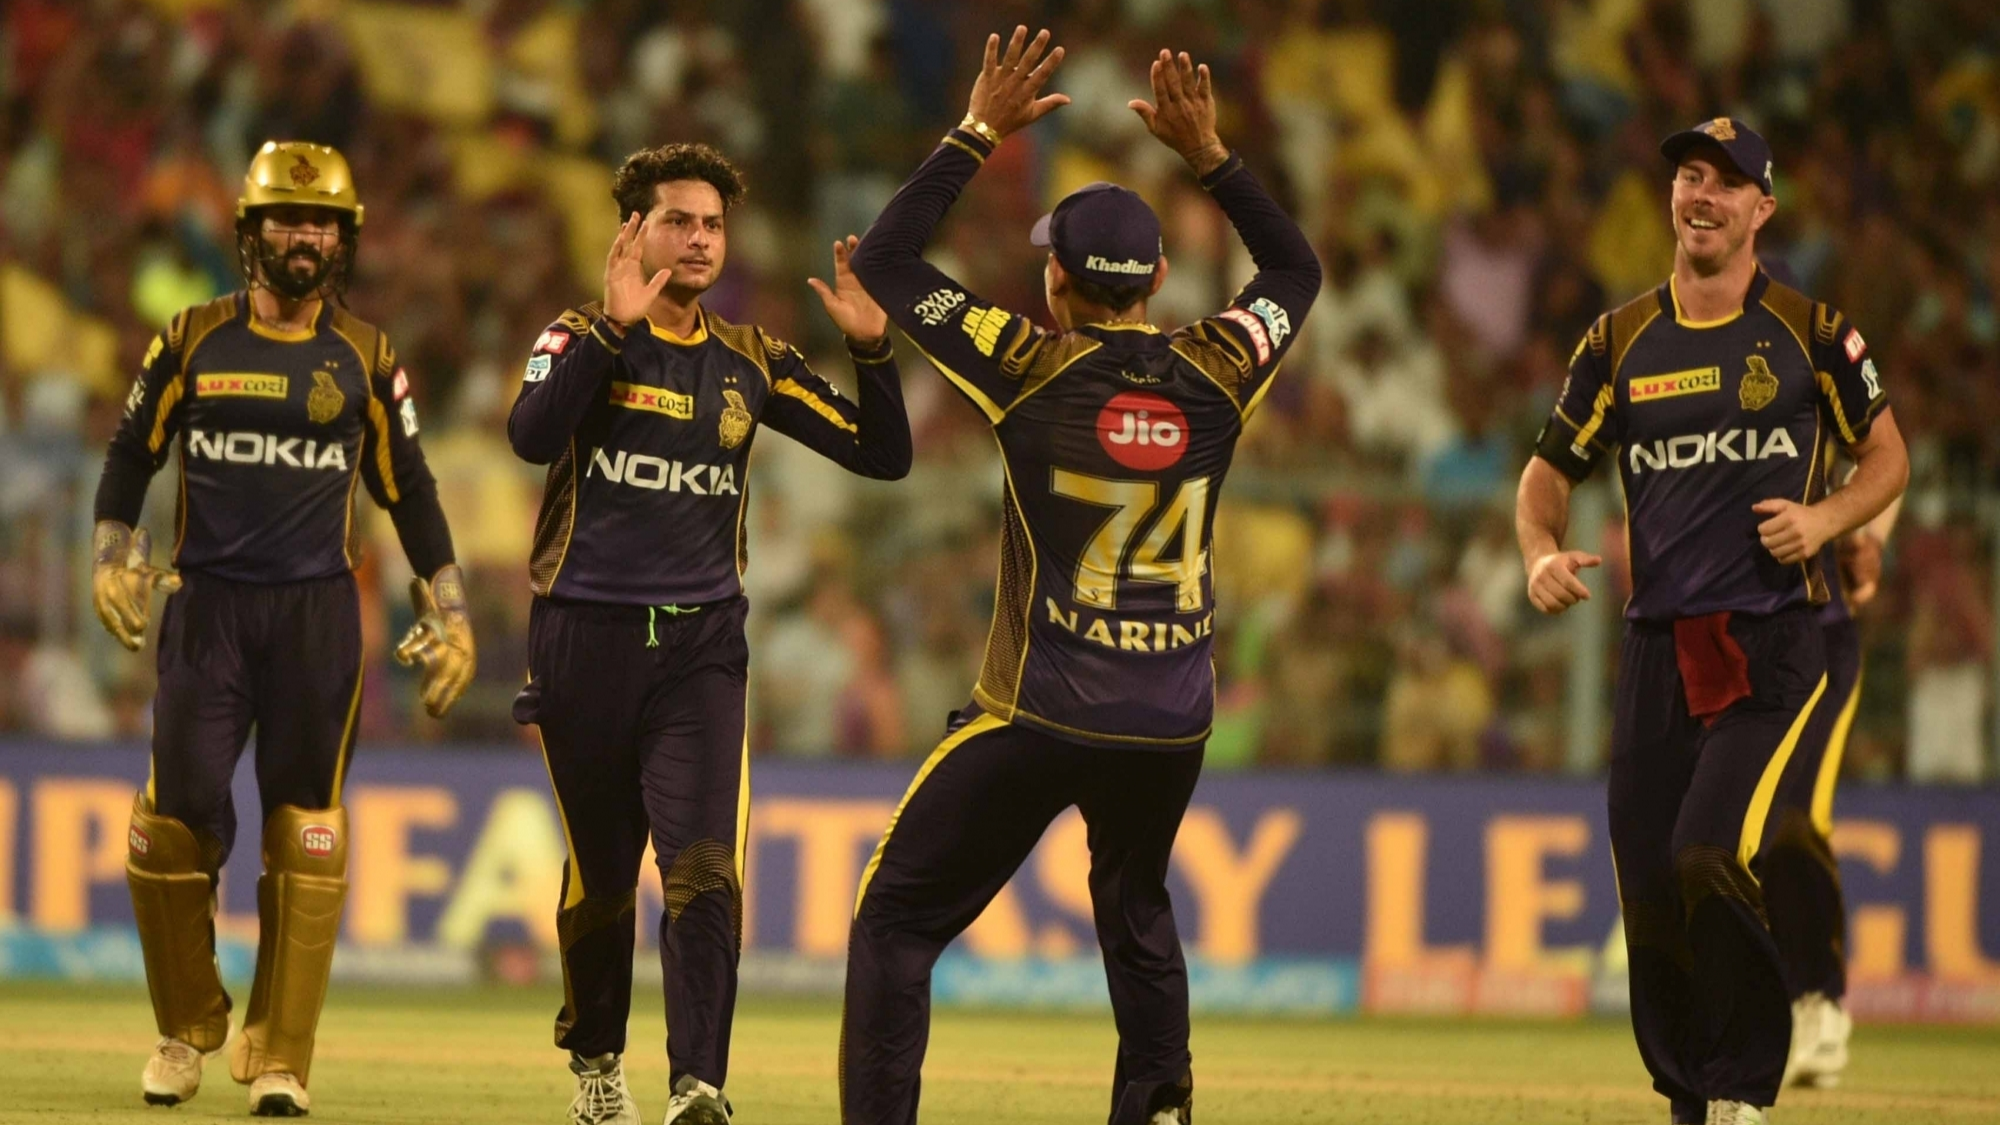 IPL 2018: Match 49th, KKR v RR – Kuldeep Yadav takes 4/20, as KKR defeats RR by 6 wickets